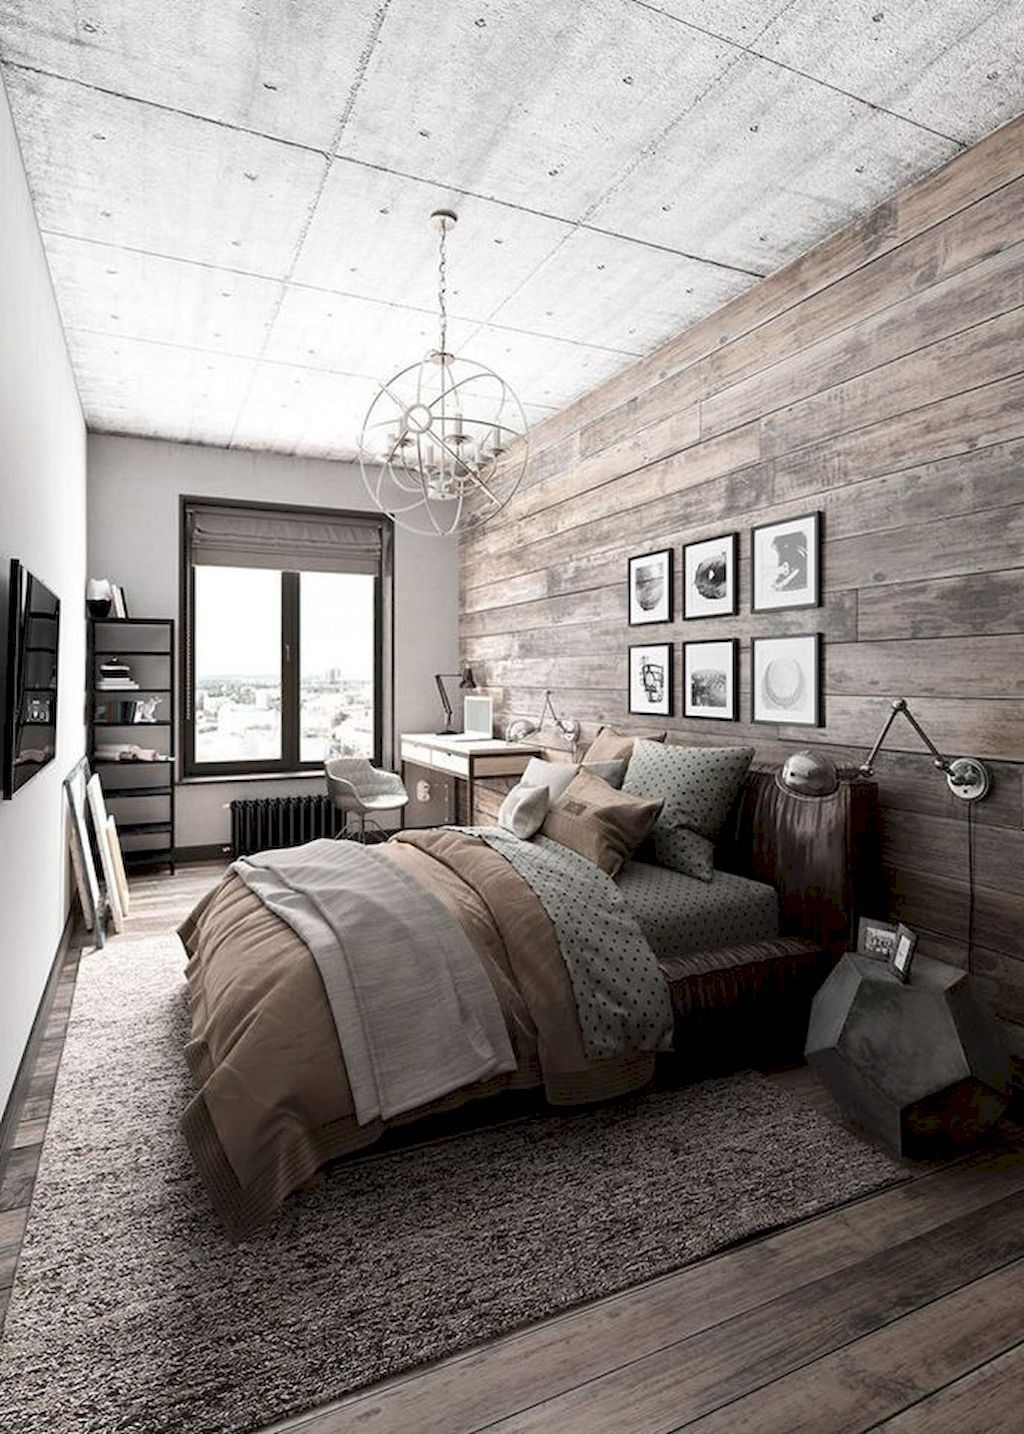 bedroom decor What's Hot On Pinterest Spice Your Bedroom Decor With Our Tips! Whats Hot On Pinterest Spice Your Bedroom Decor With Our Tips 4